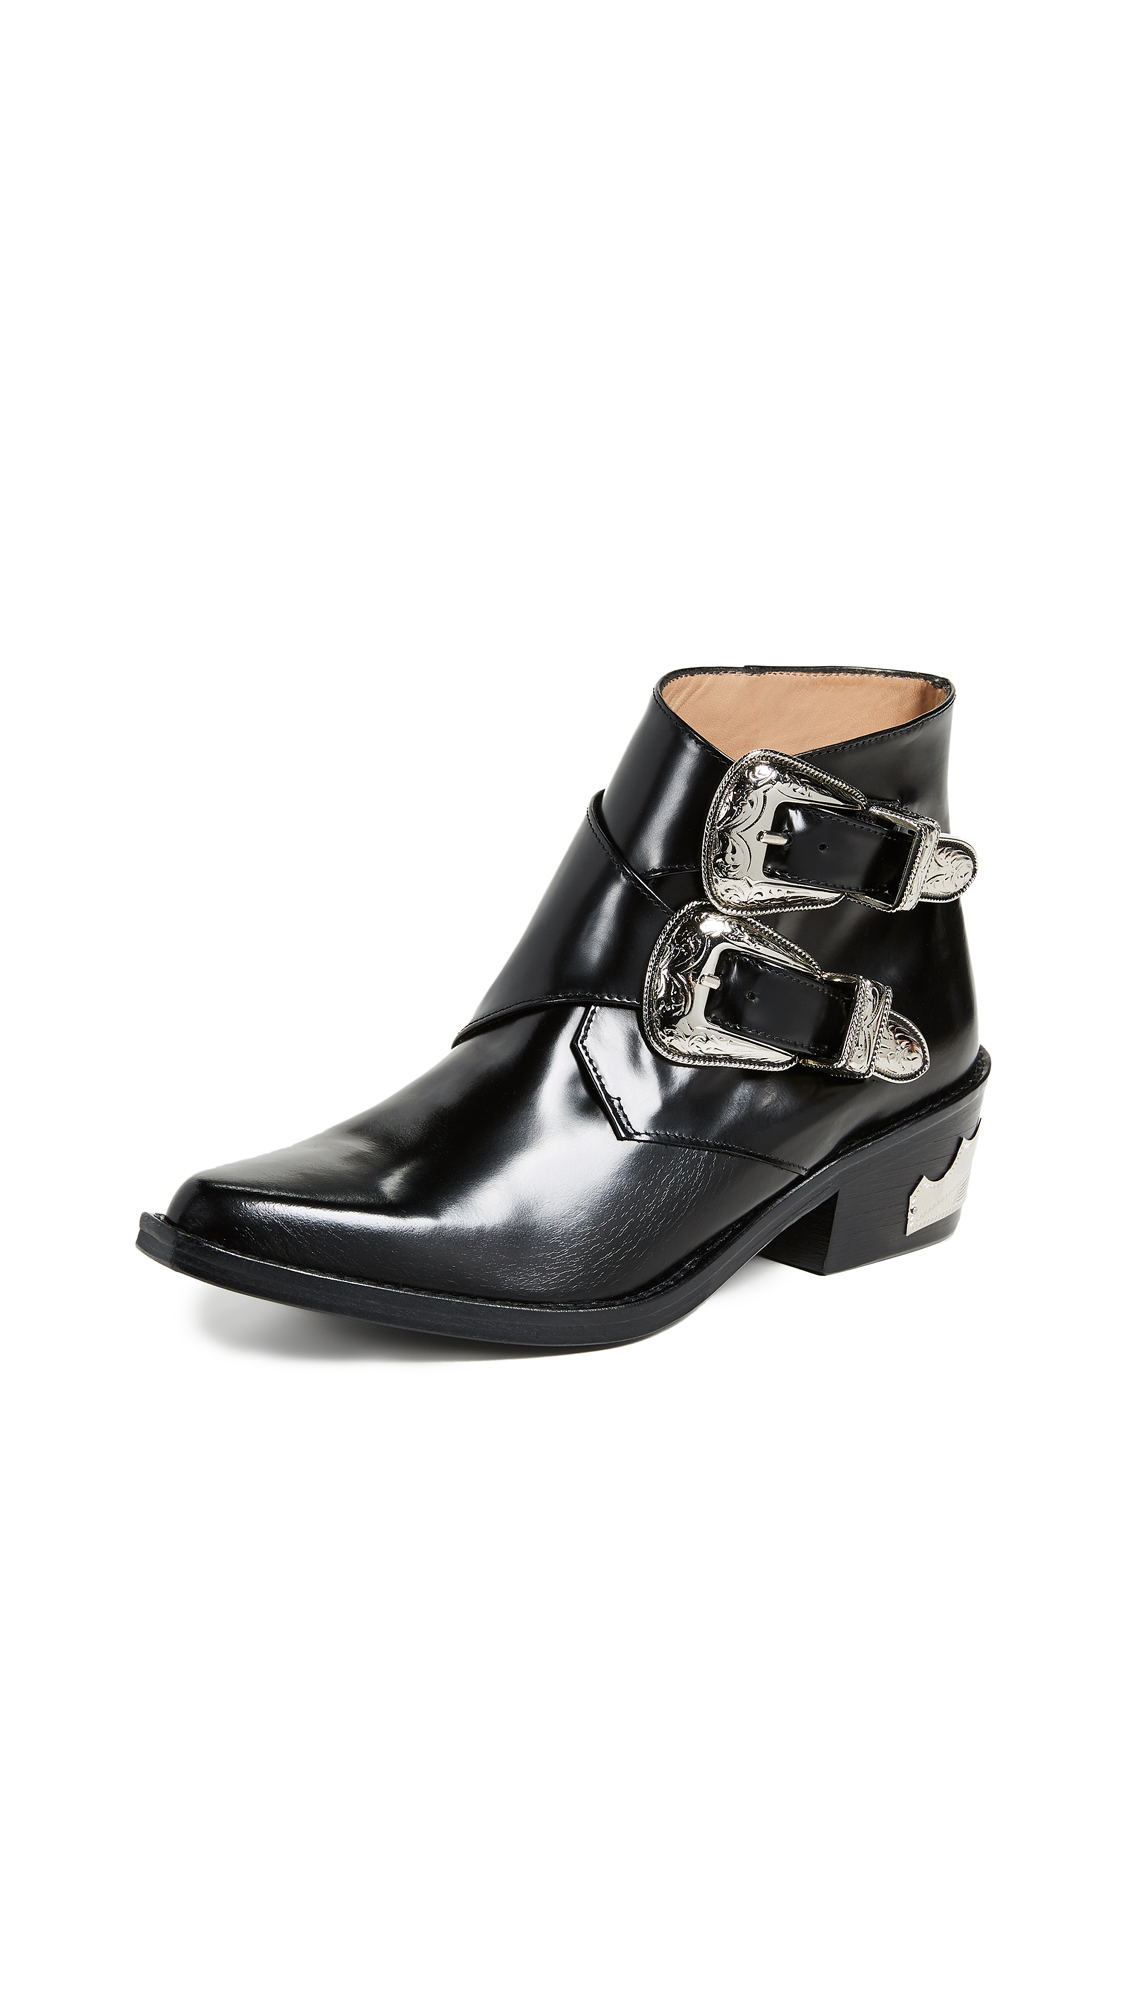 Toga Pulla Two Band Buckle Boots